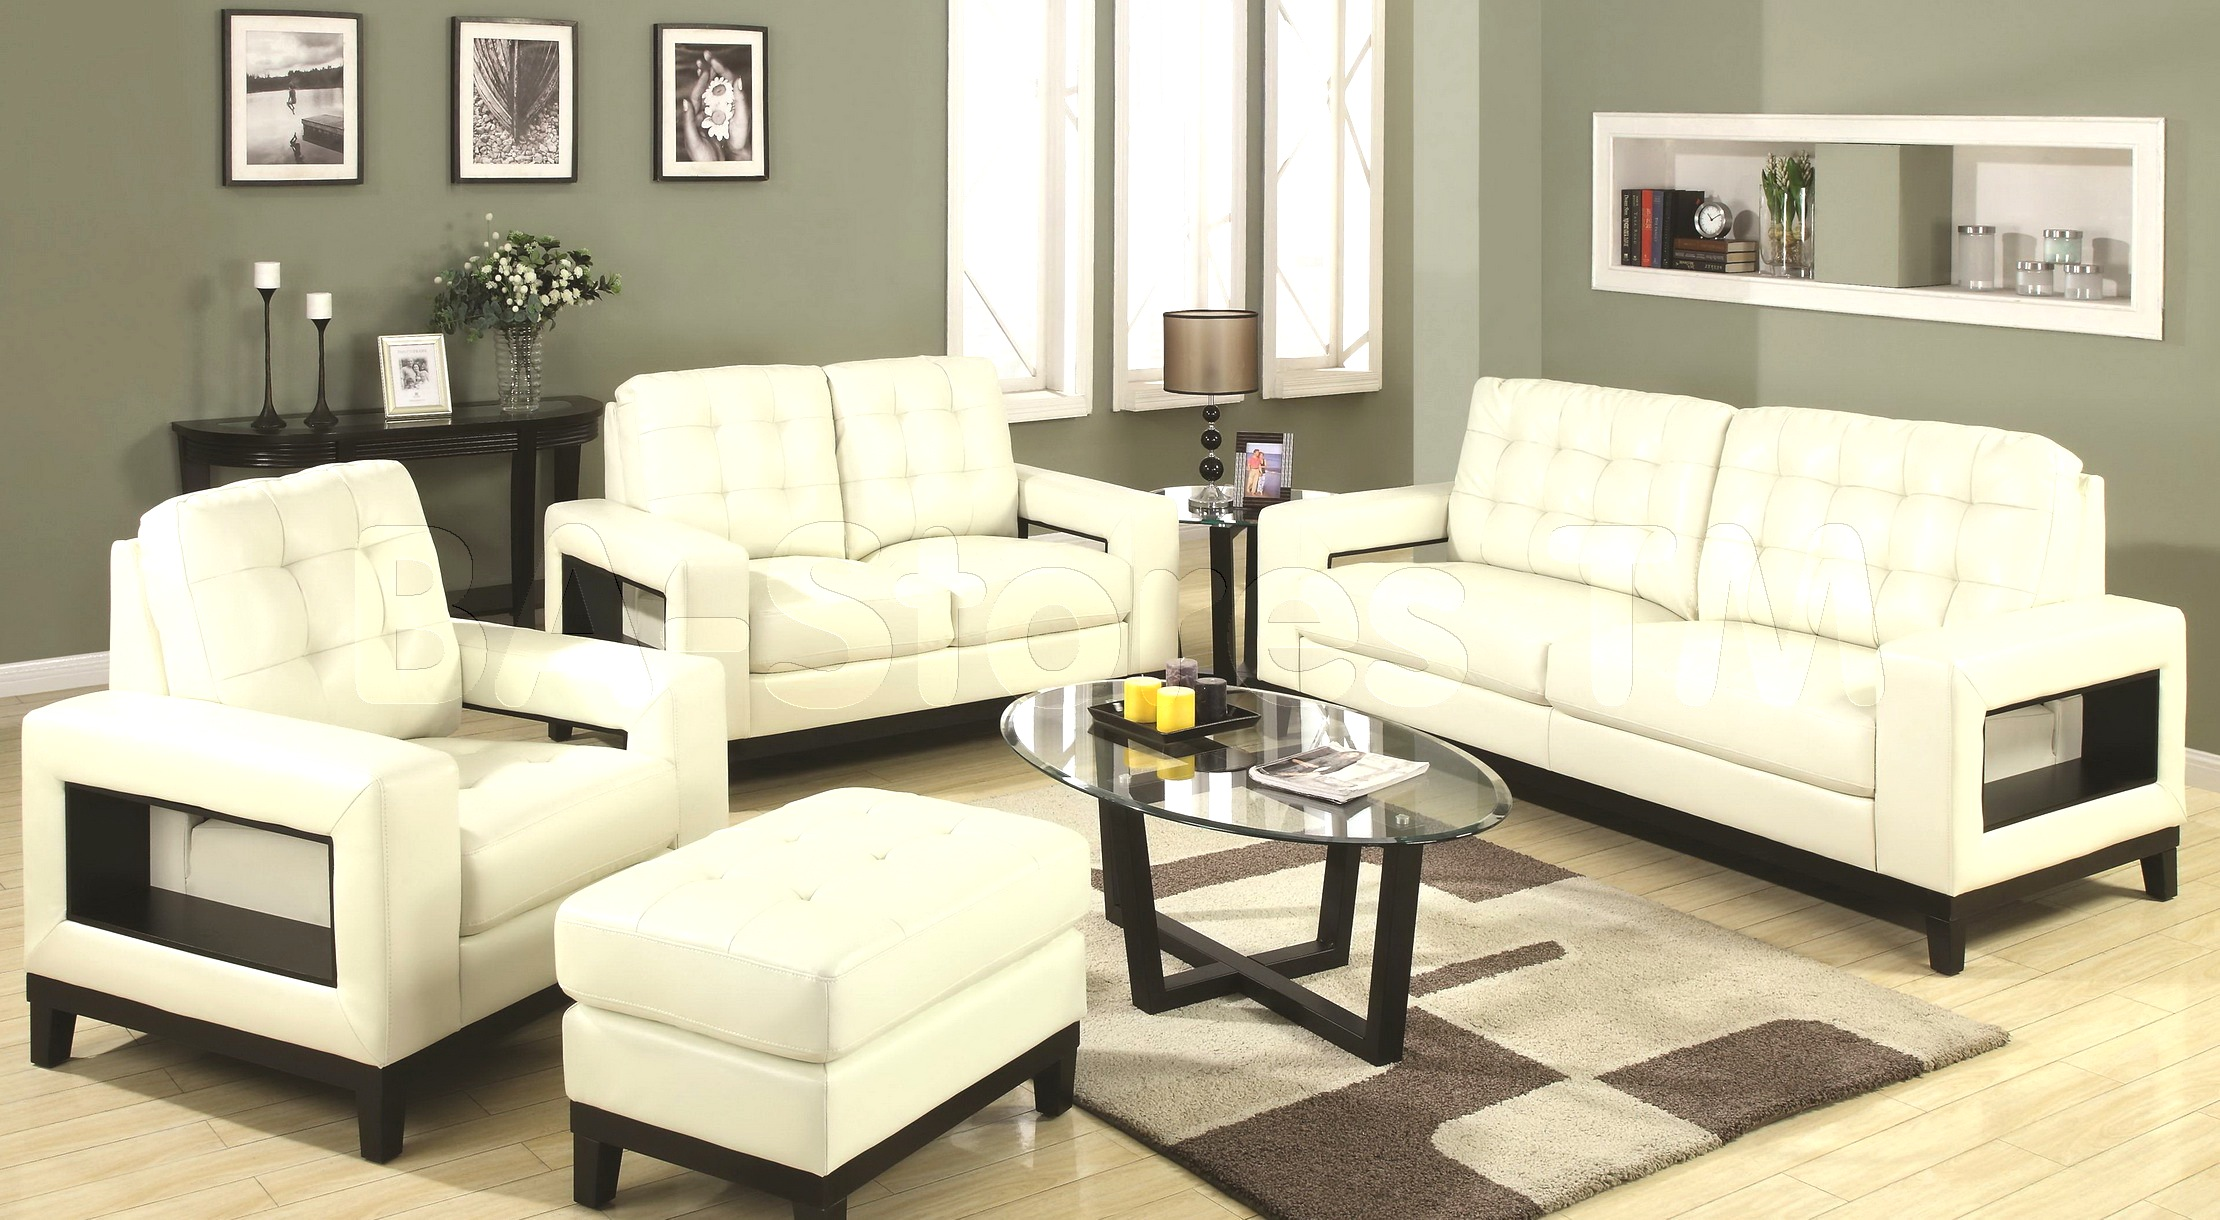 White living room sofa modern house for Living room coach